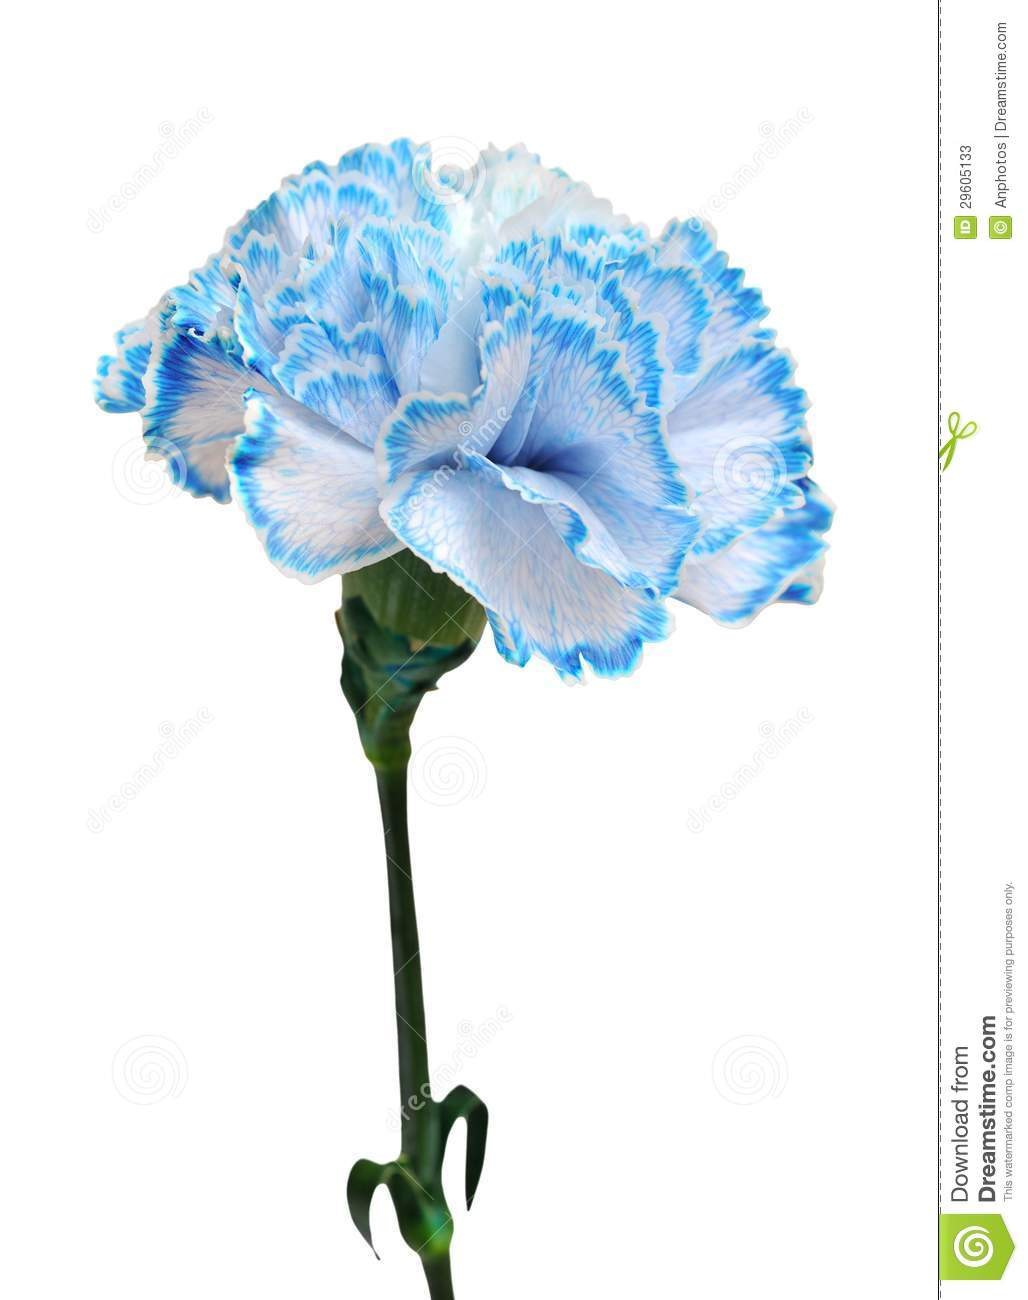 More similar stock images of ` Blue carnation `